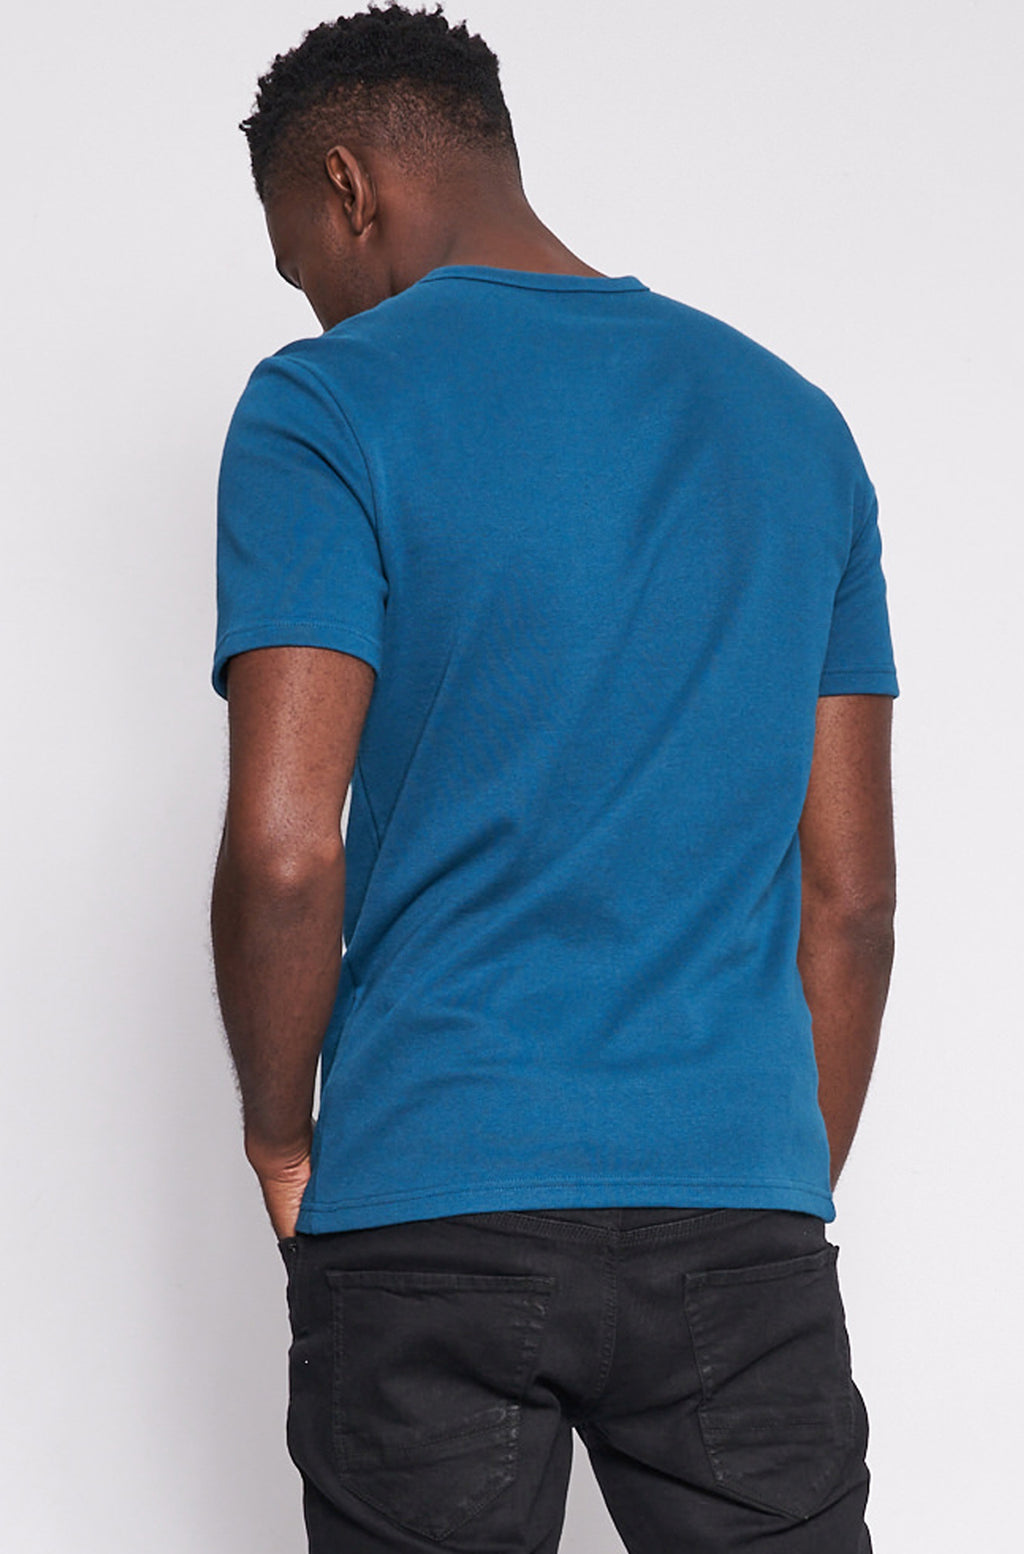 Lockwood Tee _ 113295 _ Teal